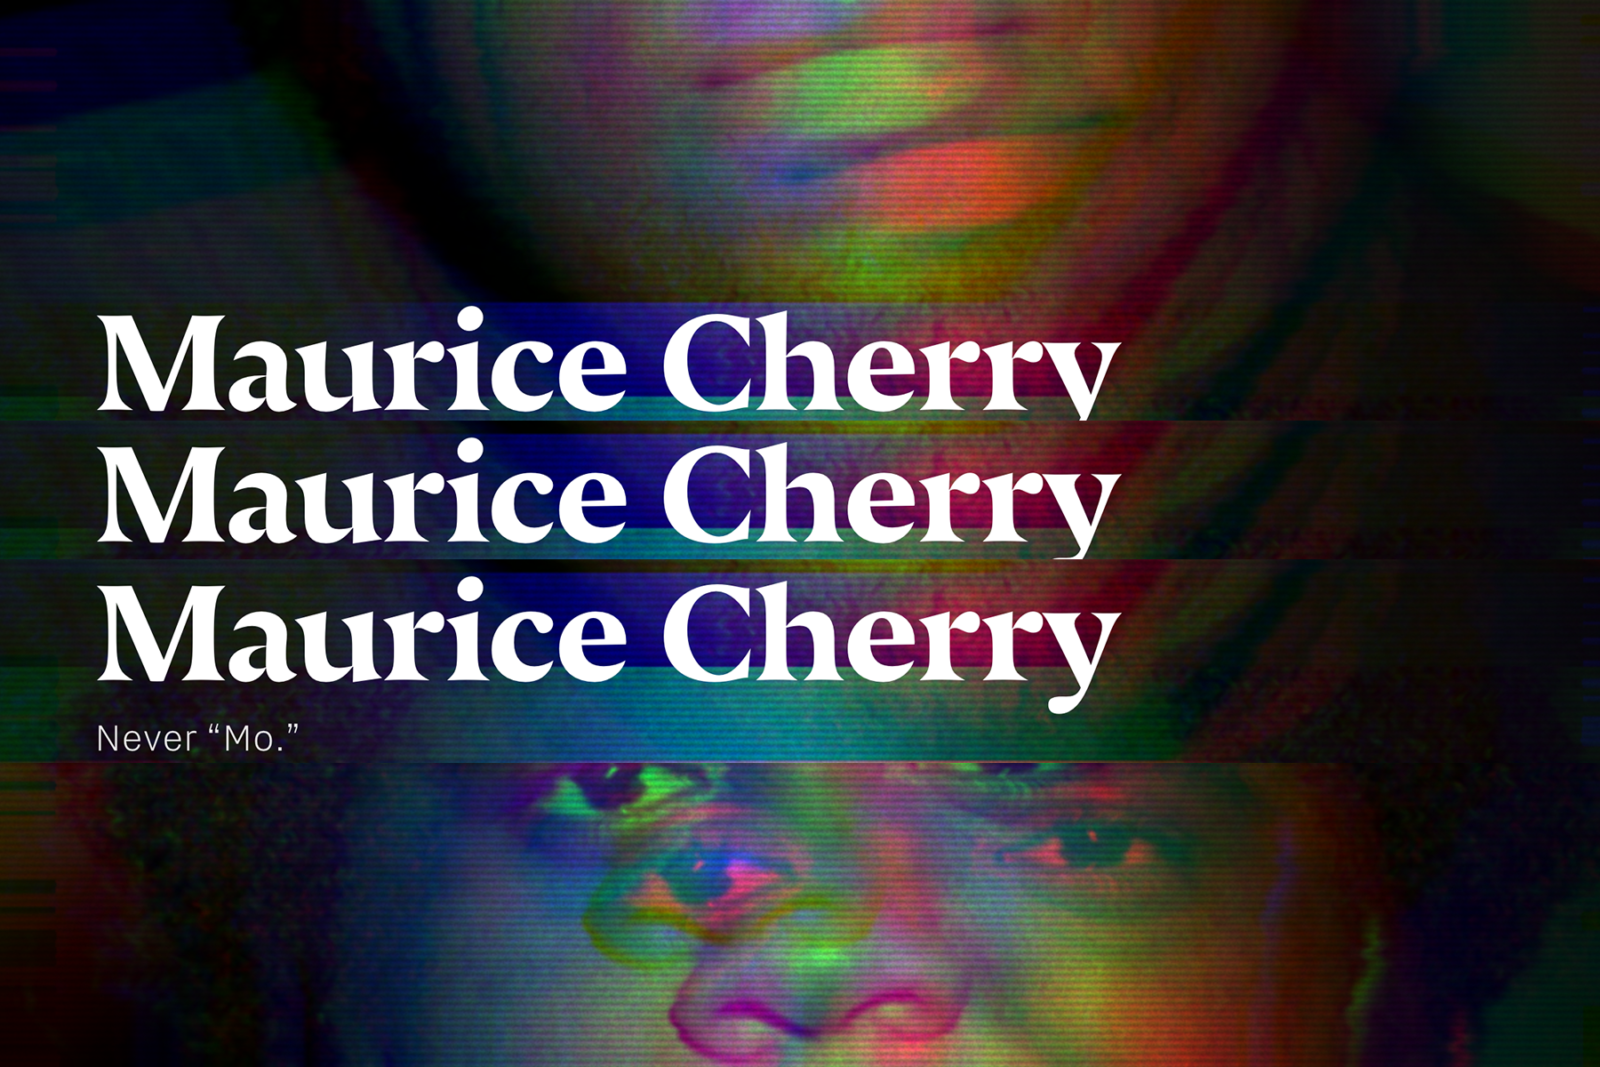 Maurice Cherry Lecture